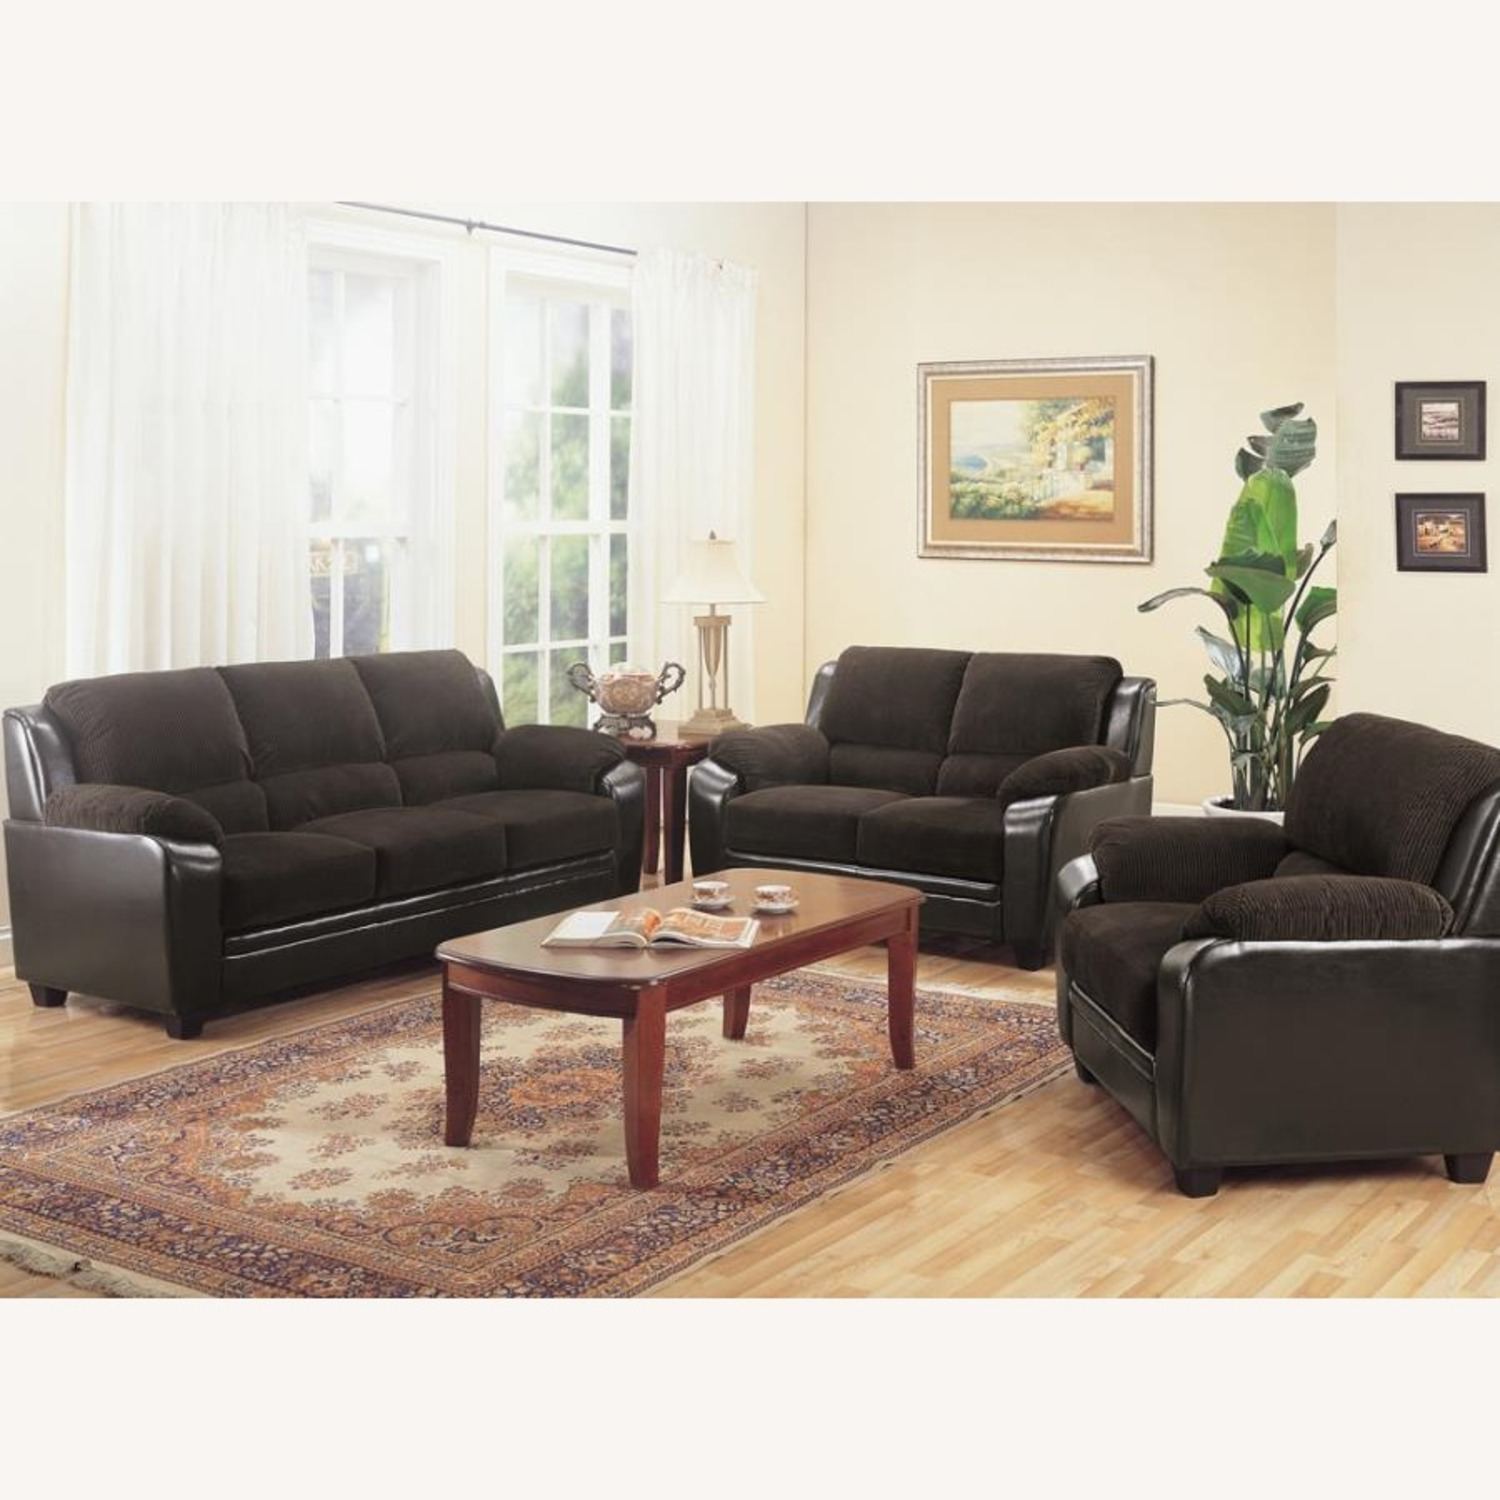 Loveseat In Rich Chocolate Leatherette - image-3